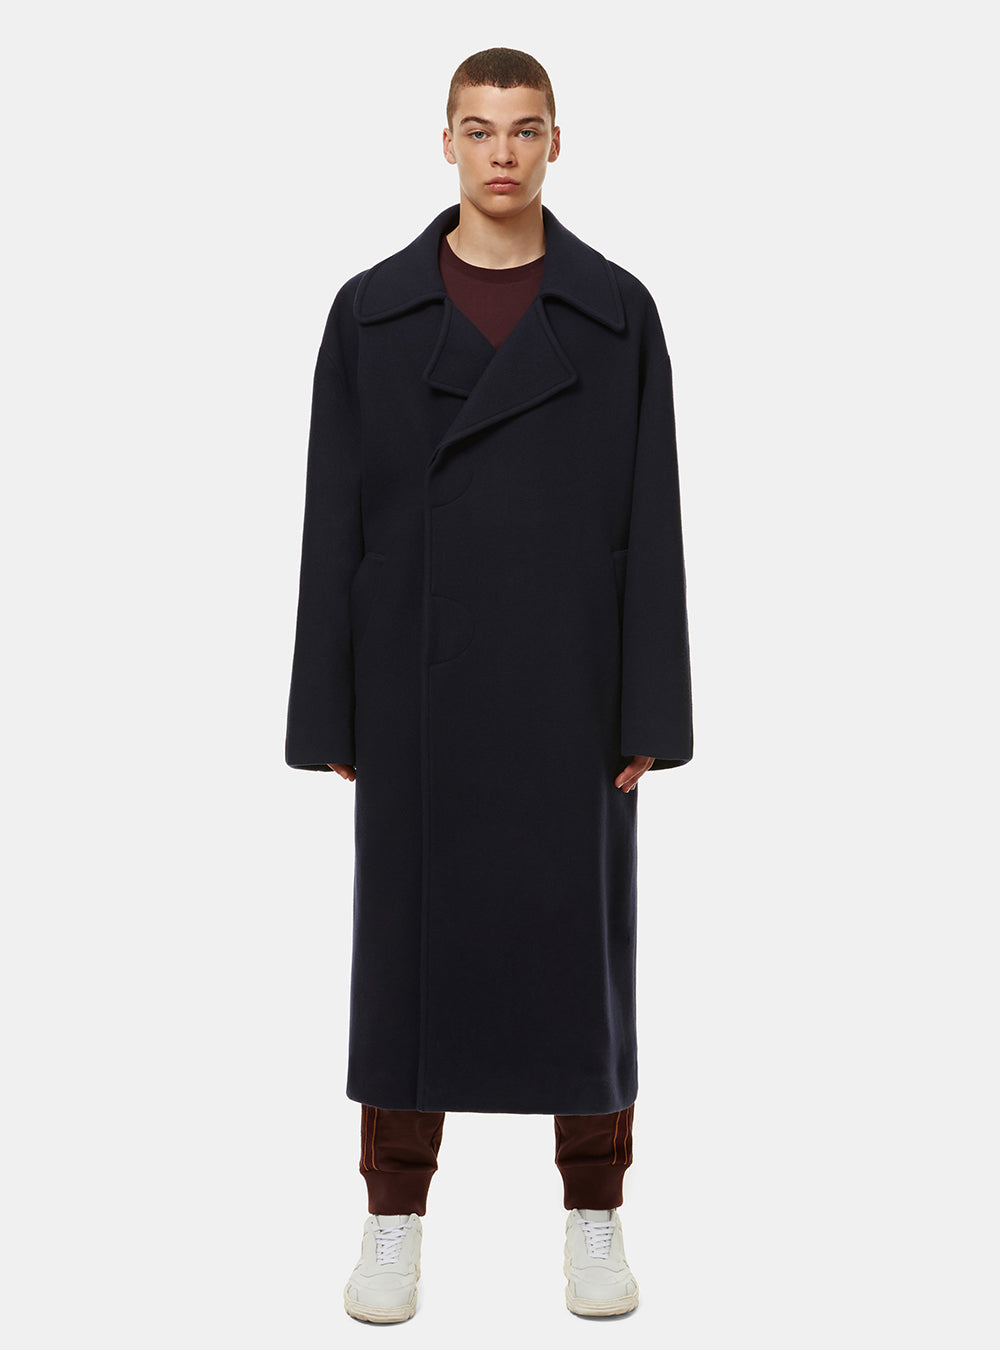 ACUBENS OVERSIZED COAT